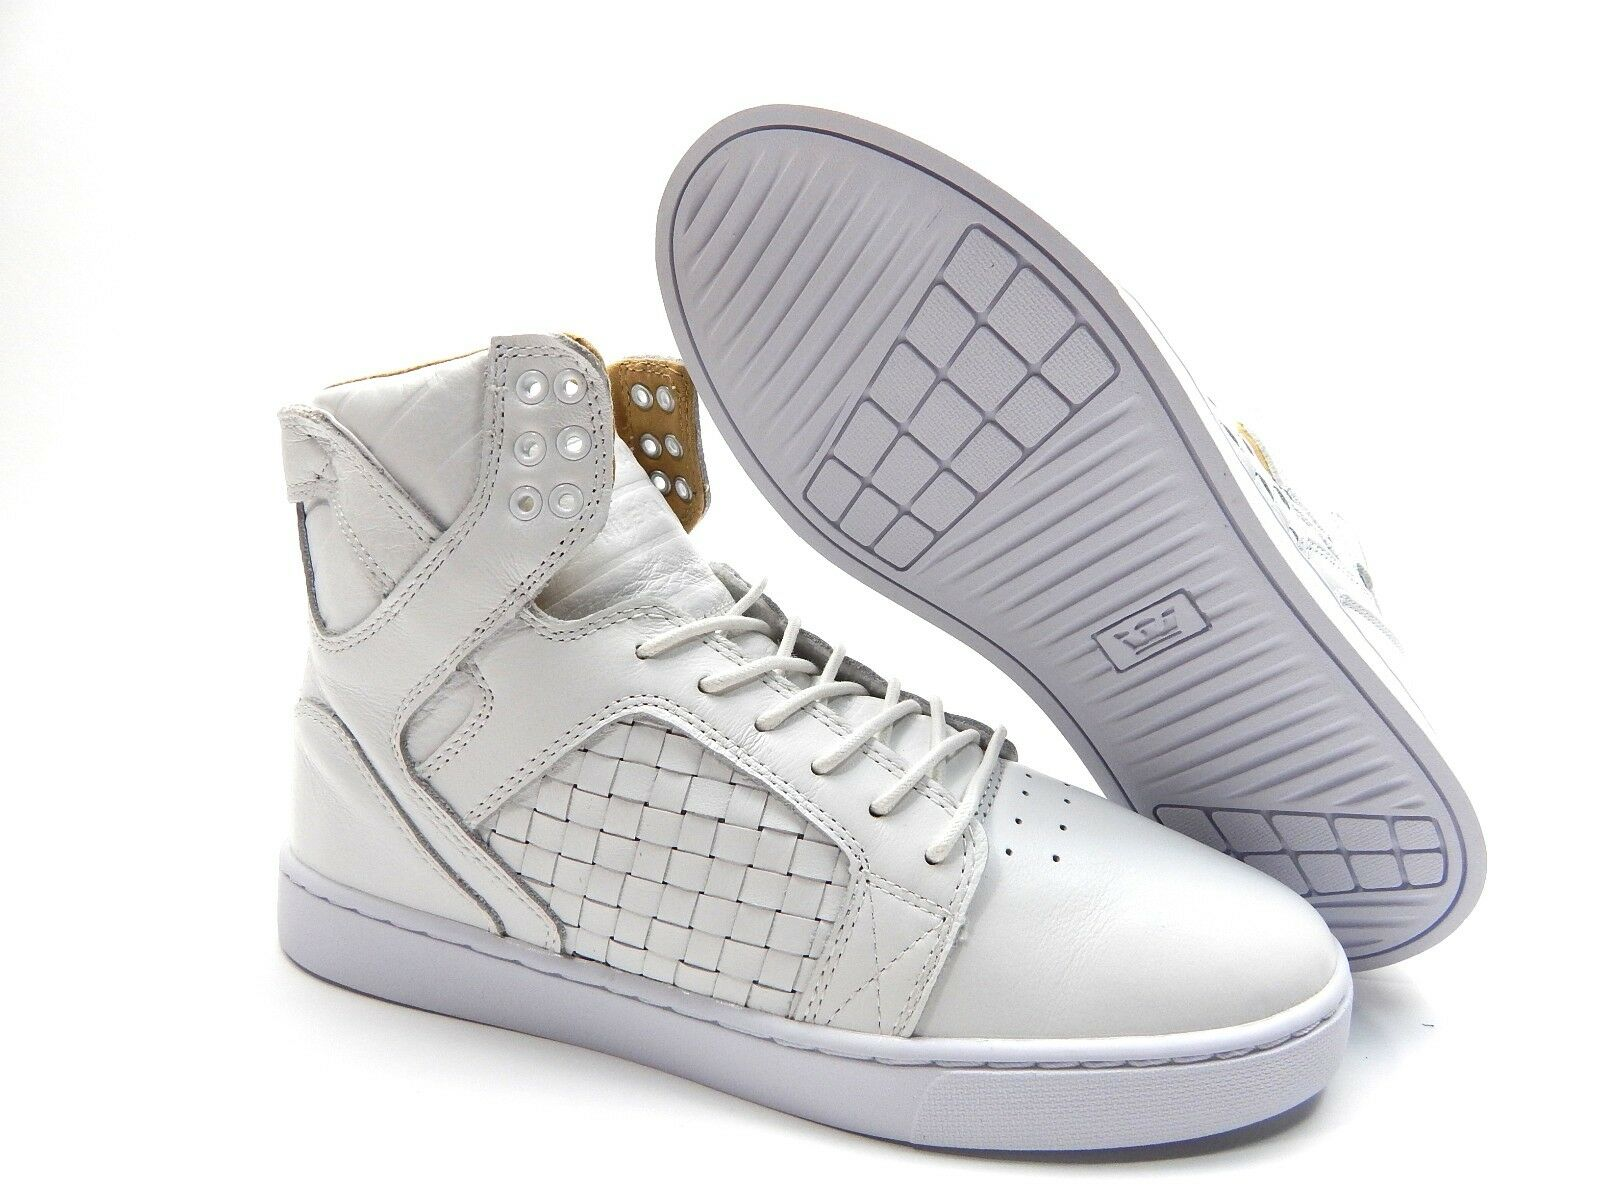 SUPRA SKYTOP LX blanc blanc hommes ChaussuresSIZE 9.5, 11 & 12